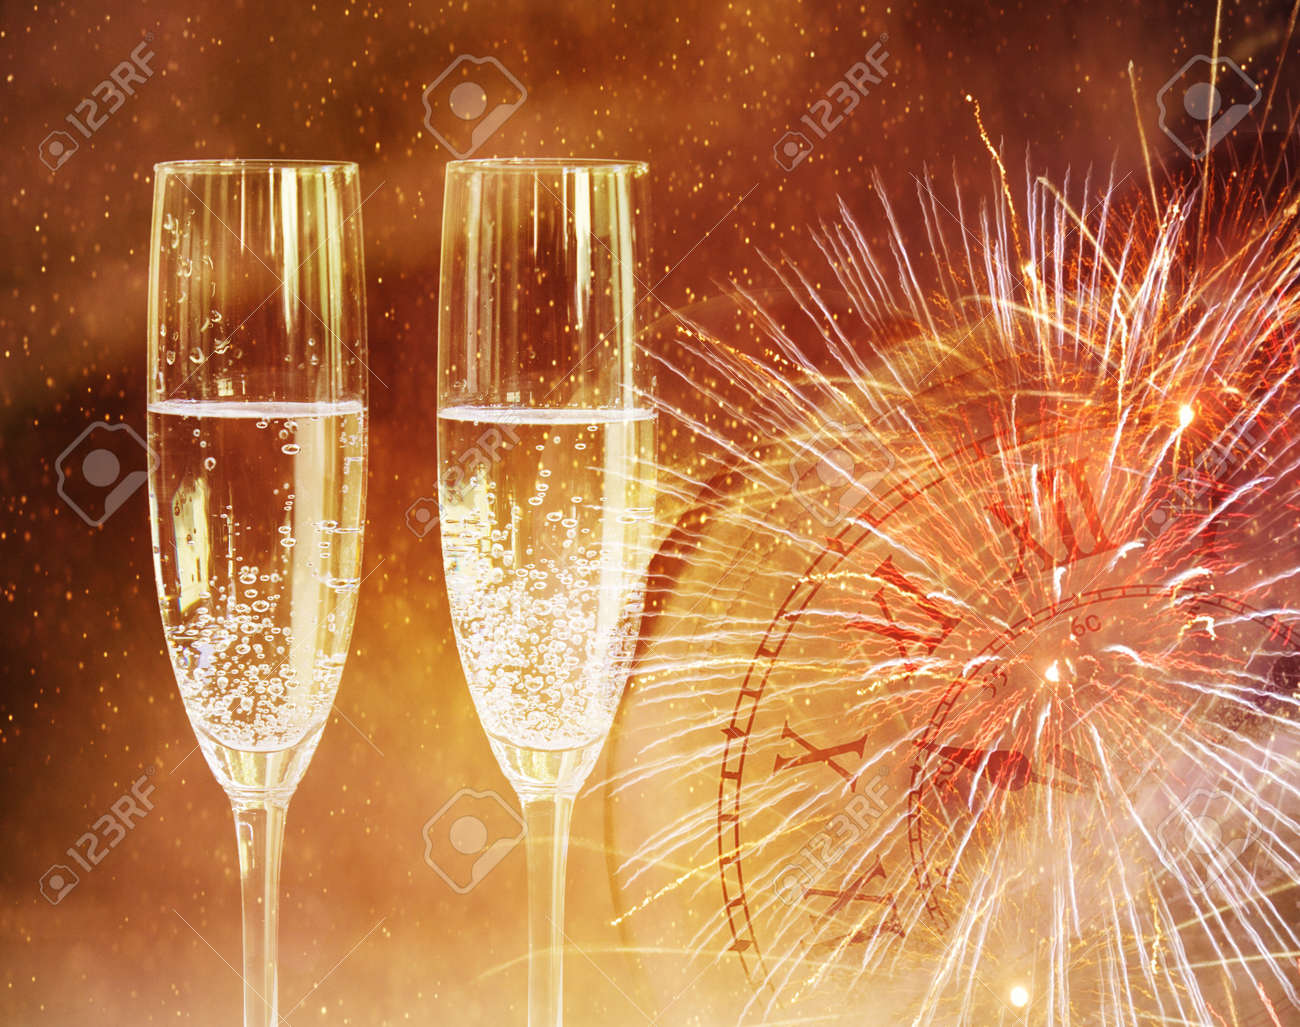 champagne glasses happy new year background stock photo 91392771